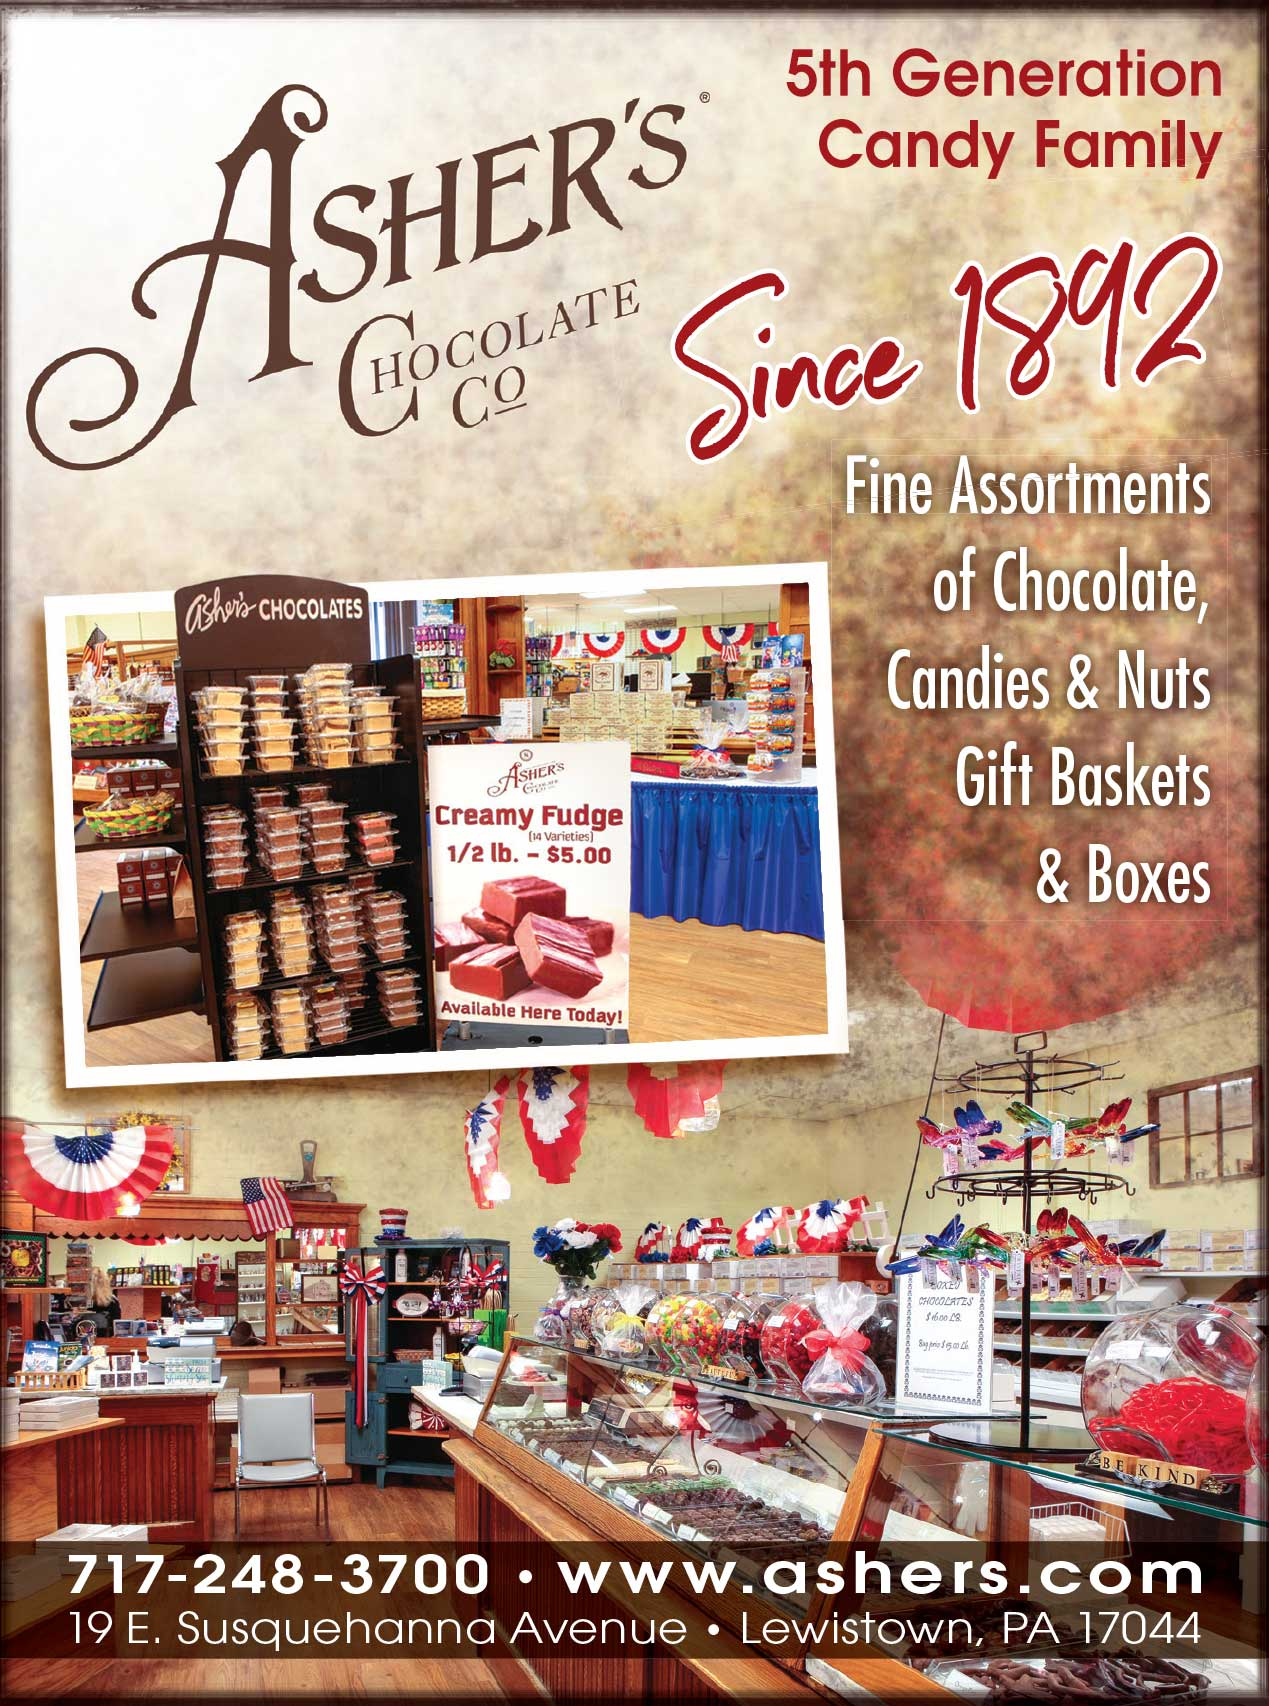 "<center>Asher's Chocolate Co | <b><a href=""https://www.ashers.com"" target=""_blank"" rel=""noopener noreferrer"">CLICK HERE to view the website</a></b></center>"